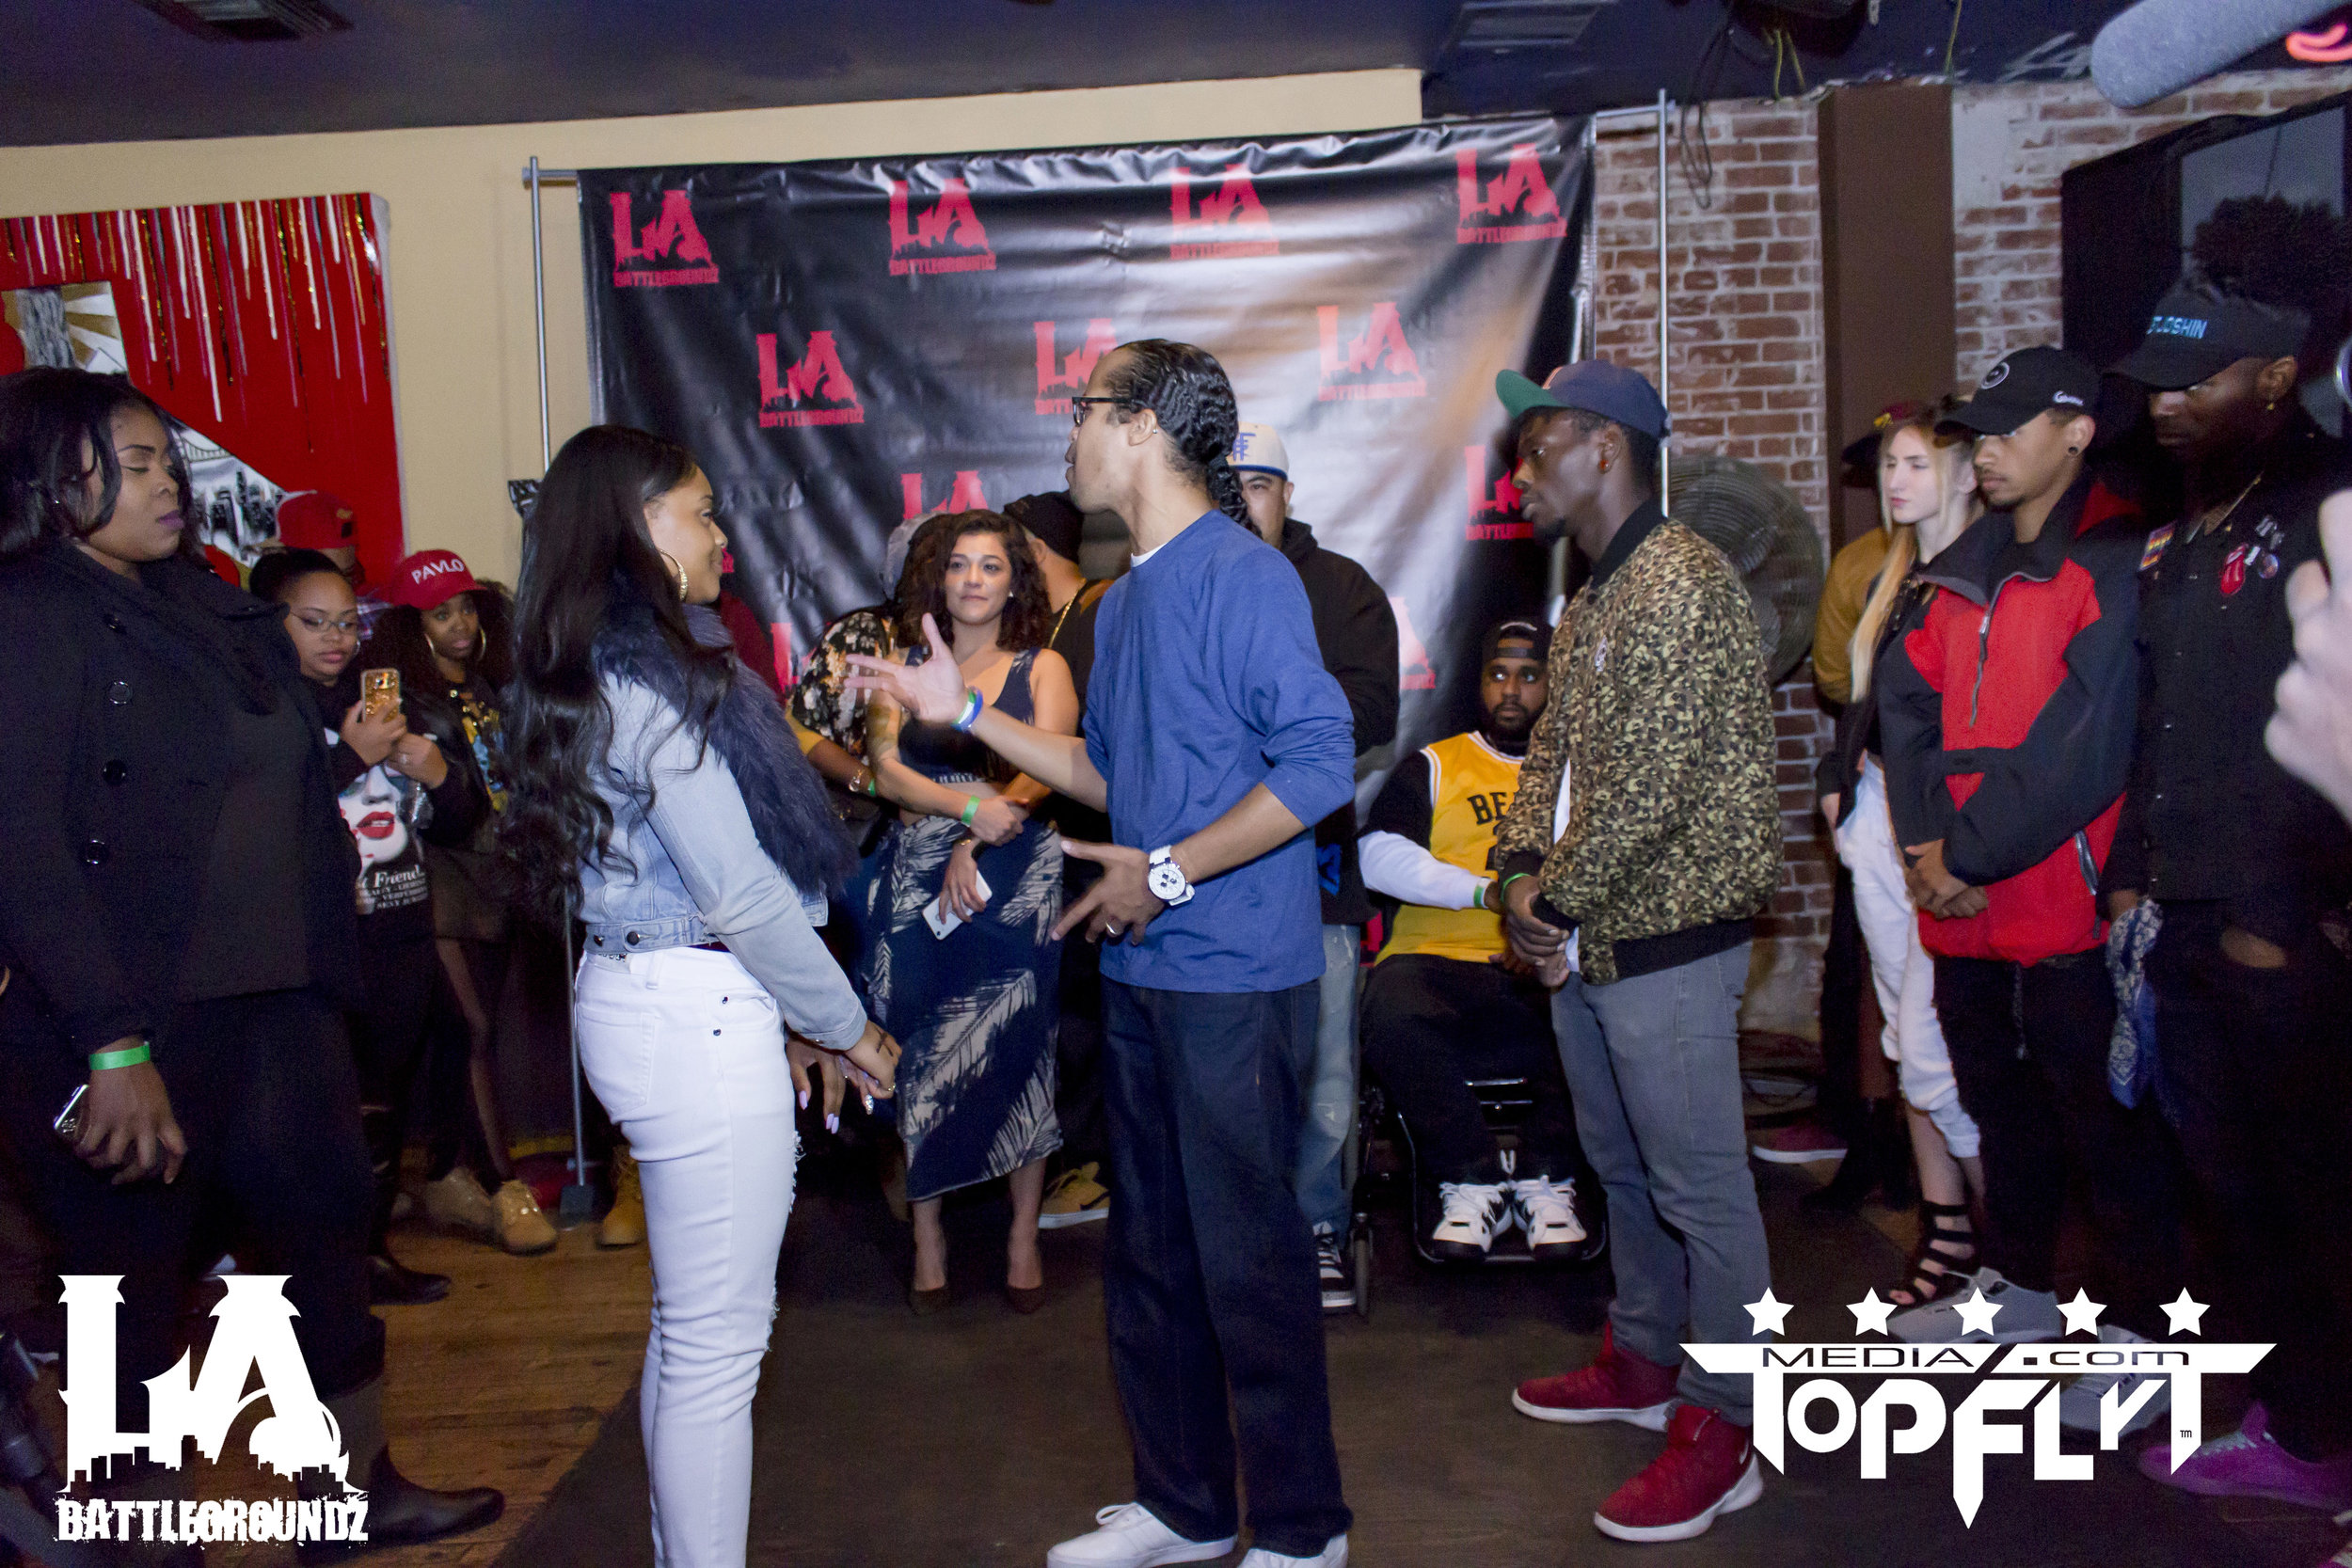 LA Battlegroundz - Decembarfest - The Christening_16.jpg